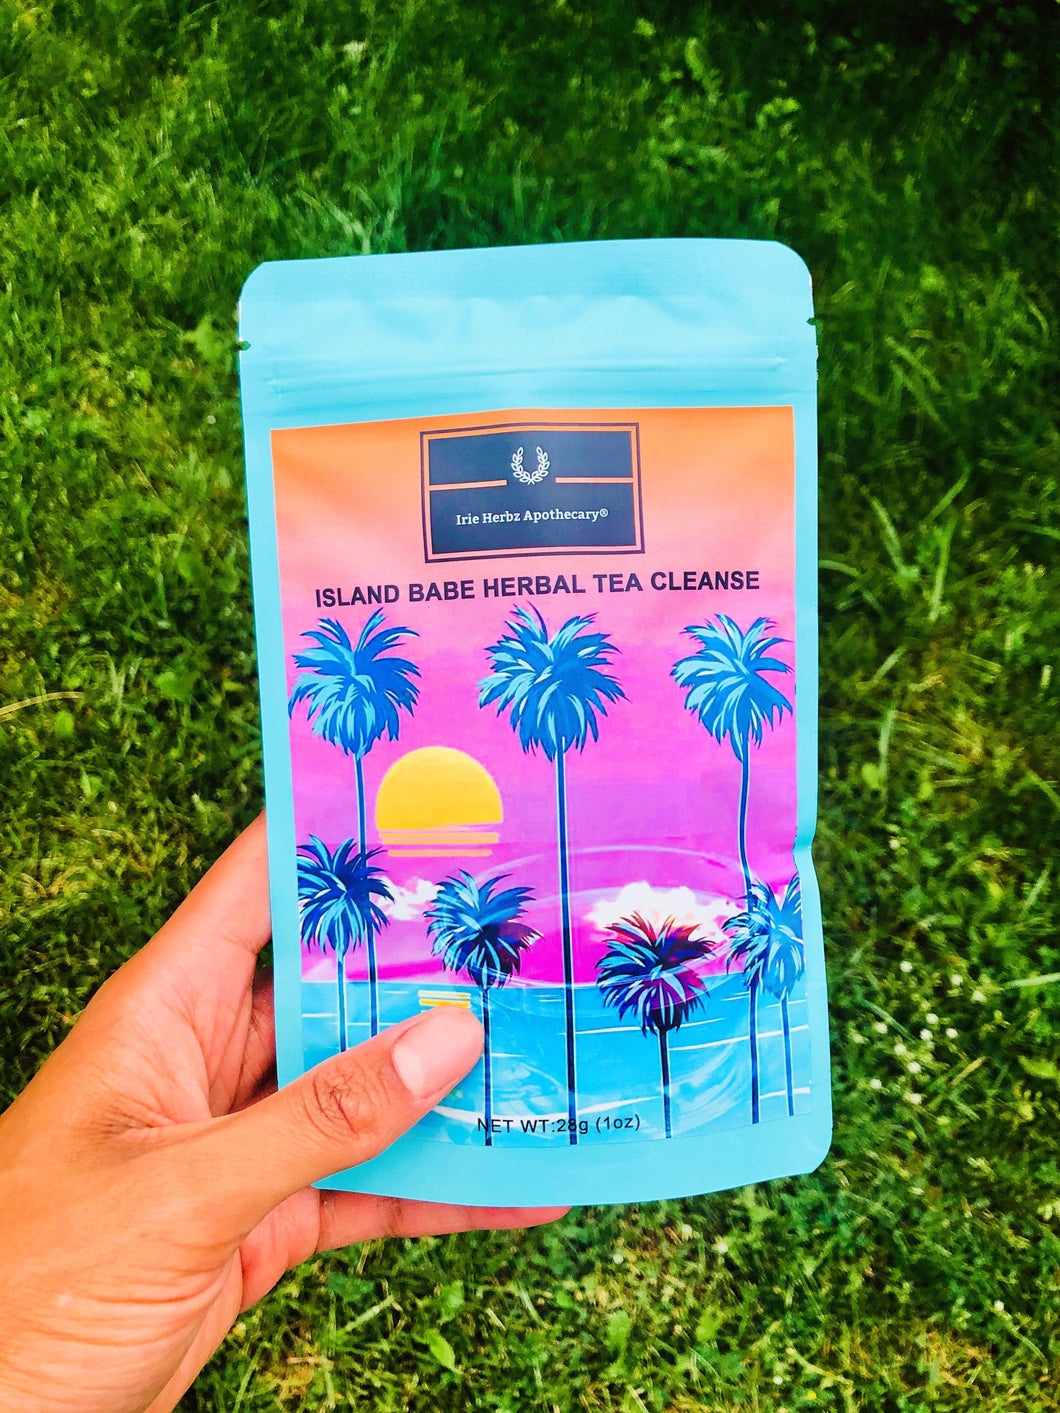 Island Babe Herbal Tea Cleanse